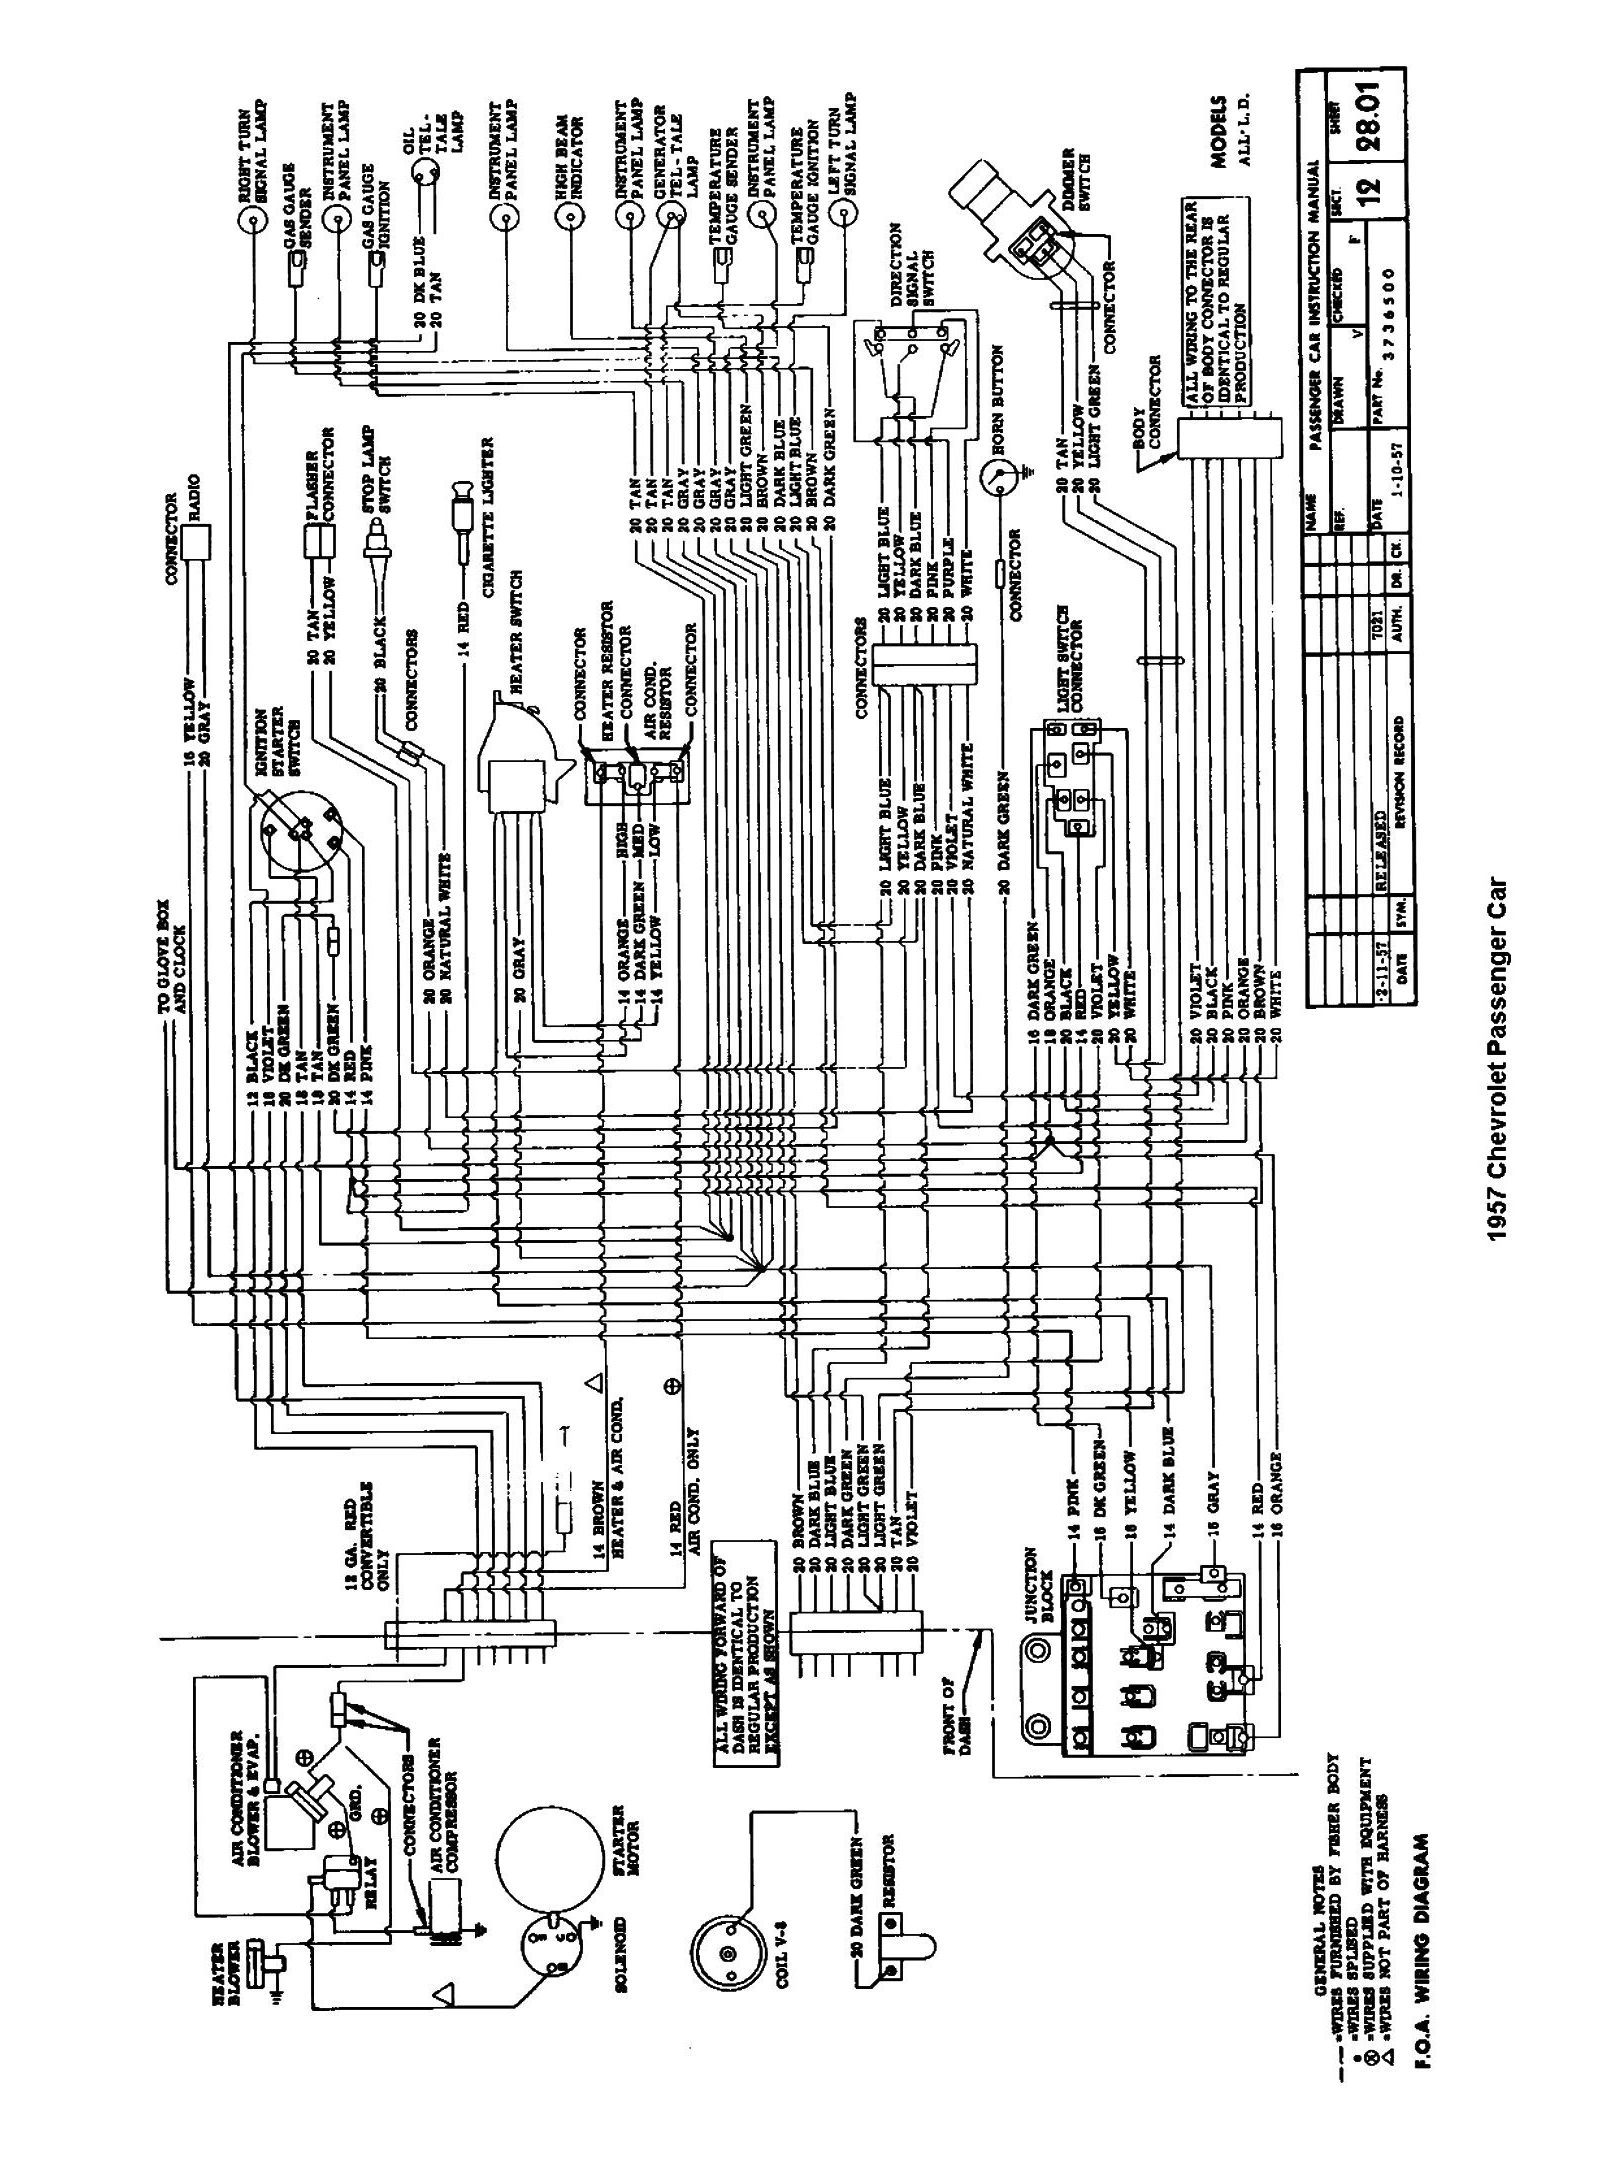 57 Chevy Wiring Kit Schema Diagram Online Painless Gm Steering Column 1957 Truck Origin 67 Mustang Harness